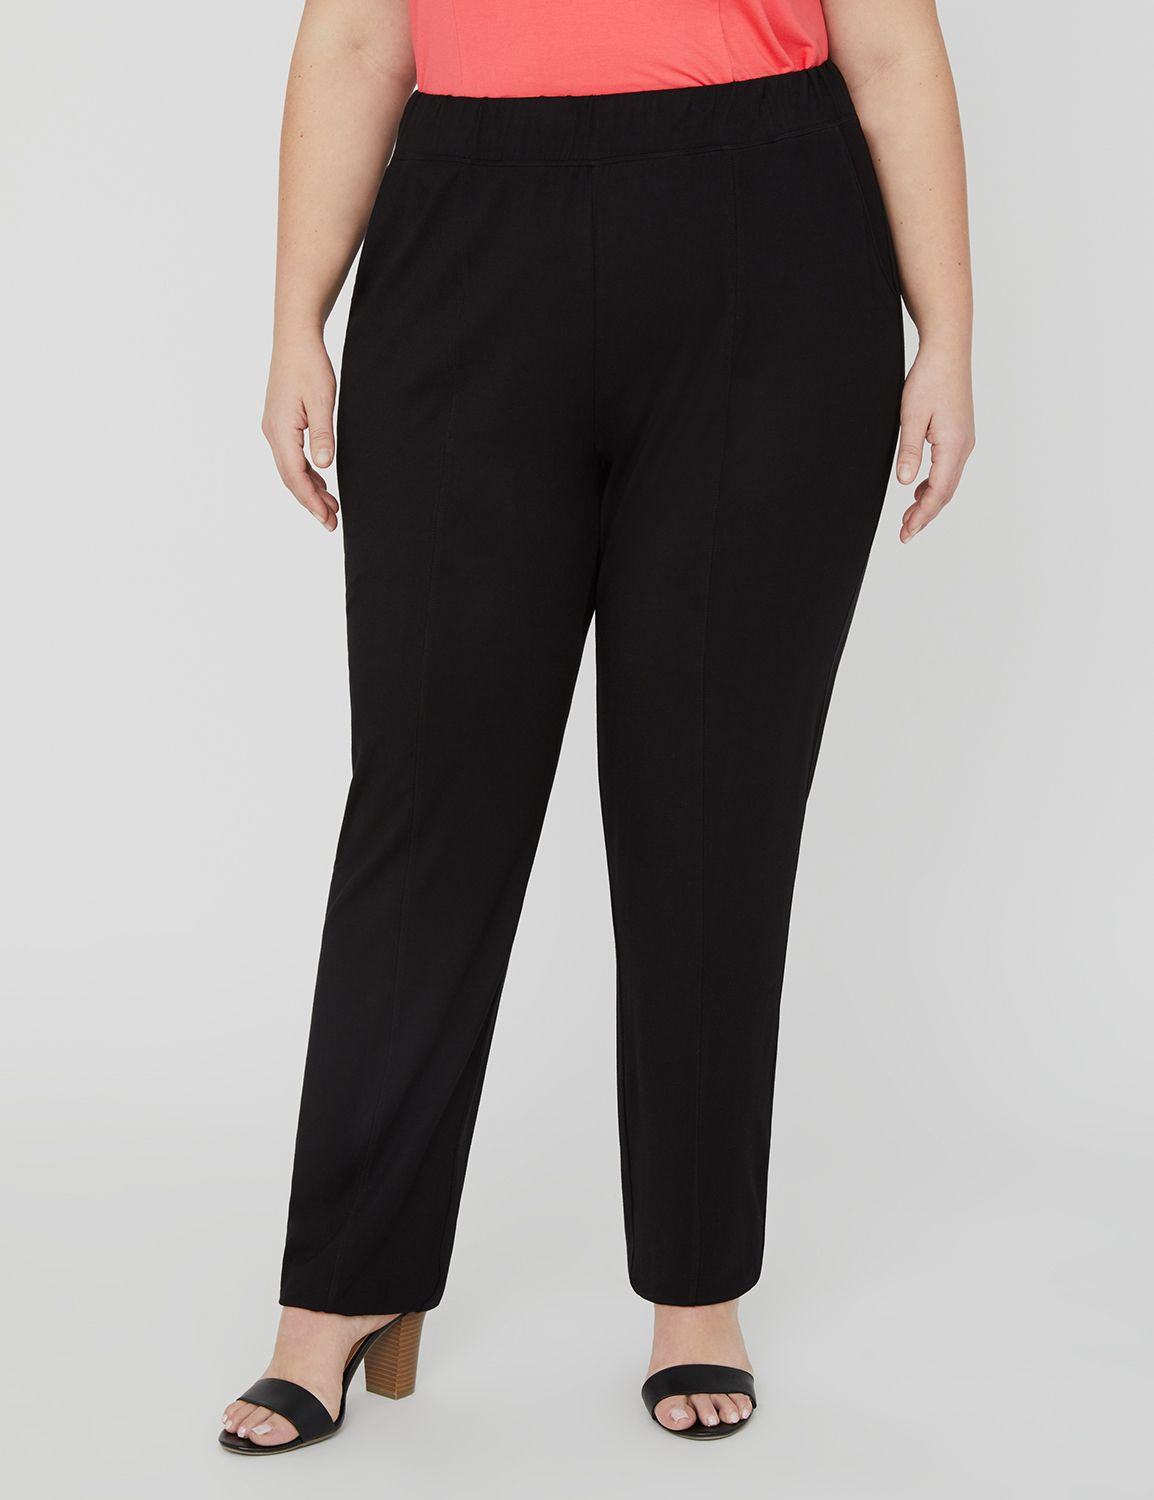 AnyWear Straight-Leg Pant 1088660 Anywear Rayon Span Straight MP-300094797